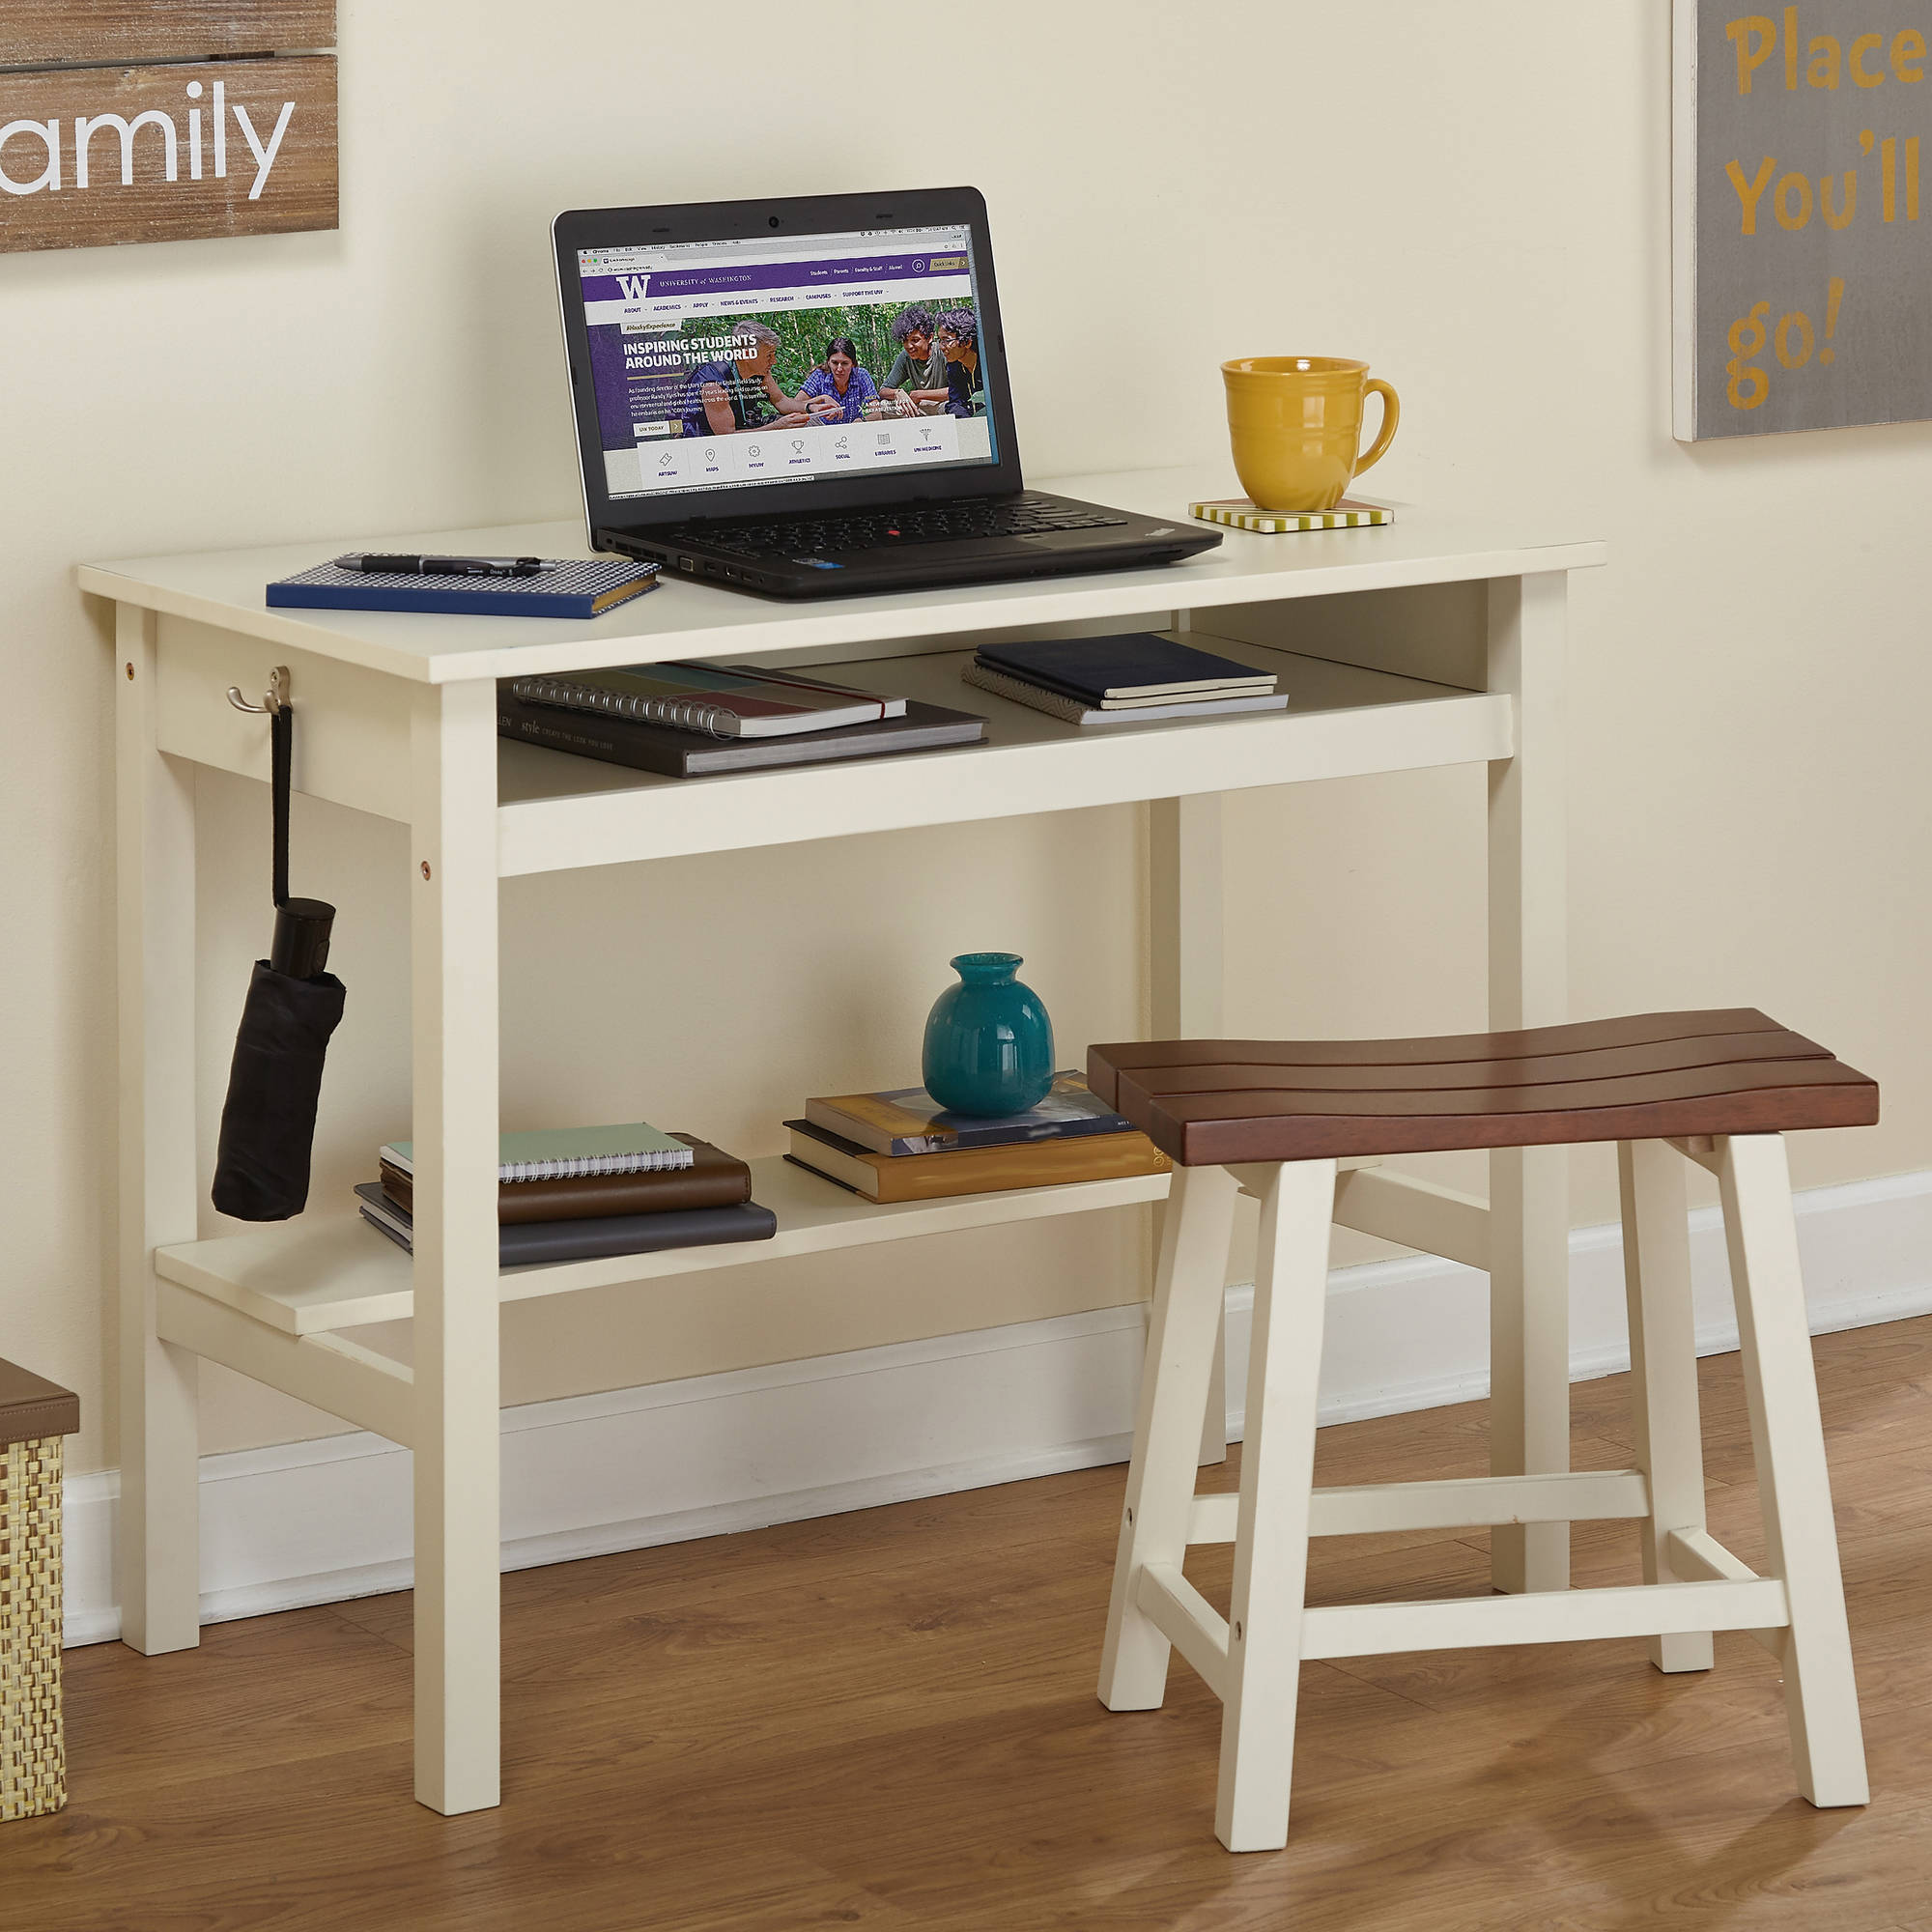 madison writing desk and saddle stool value bundle off white and oak